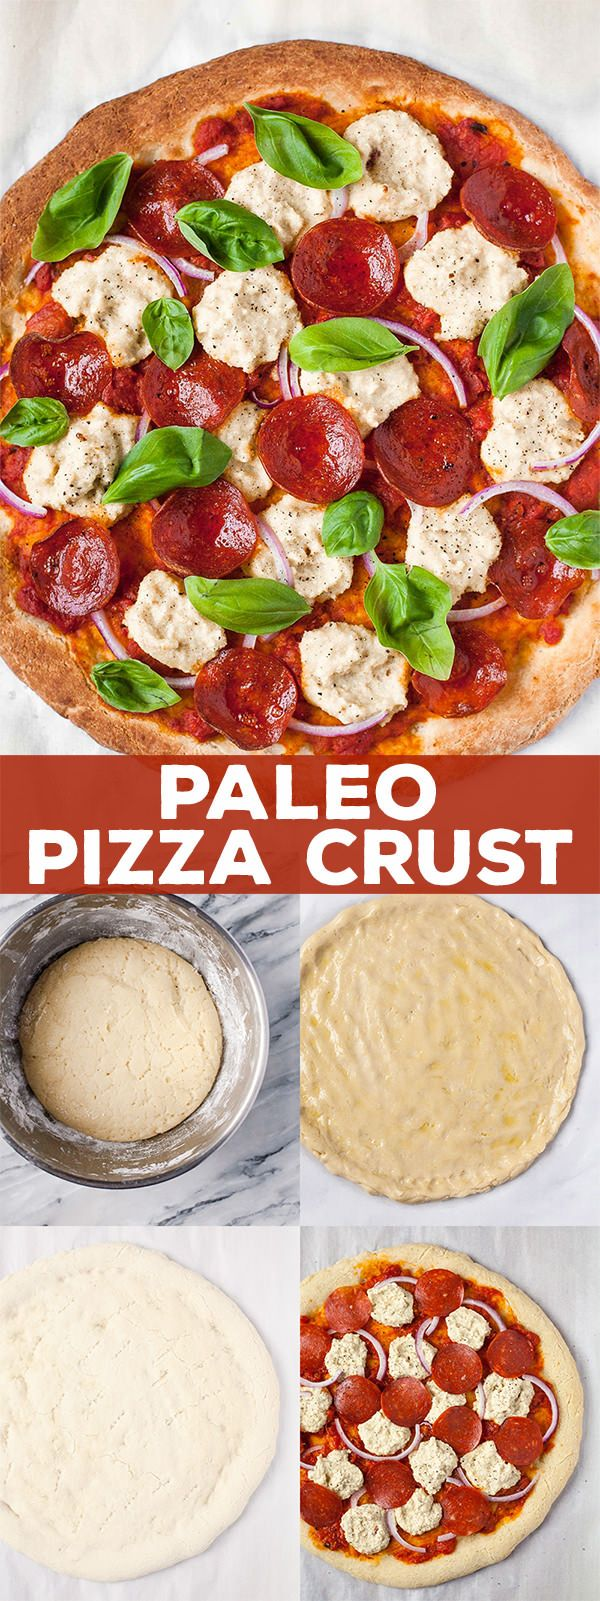 Photo of Paleo Pizza. Gluten free, grain free, dairy free, full of flavor!